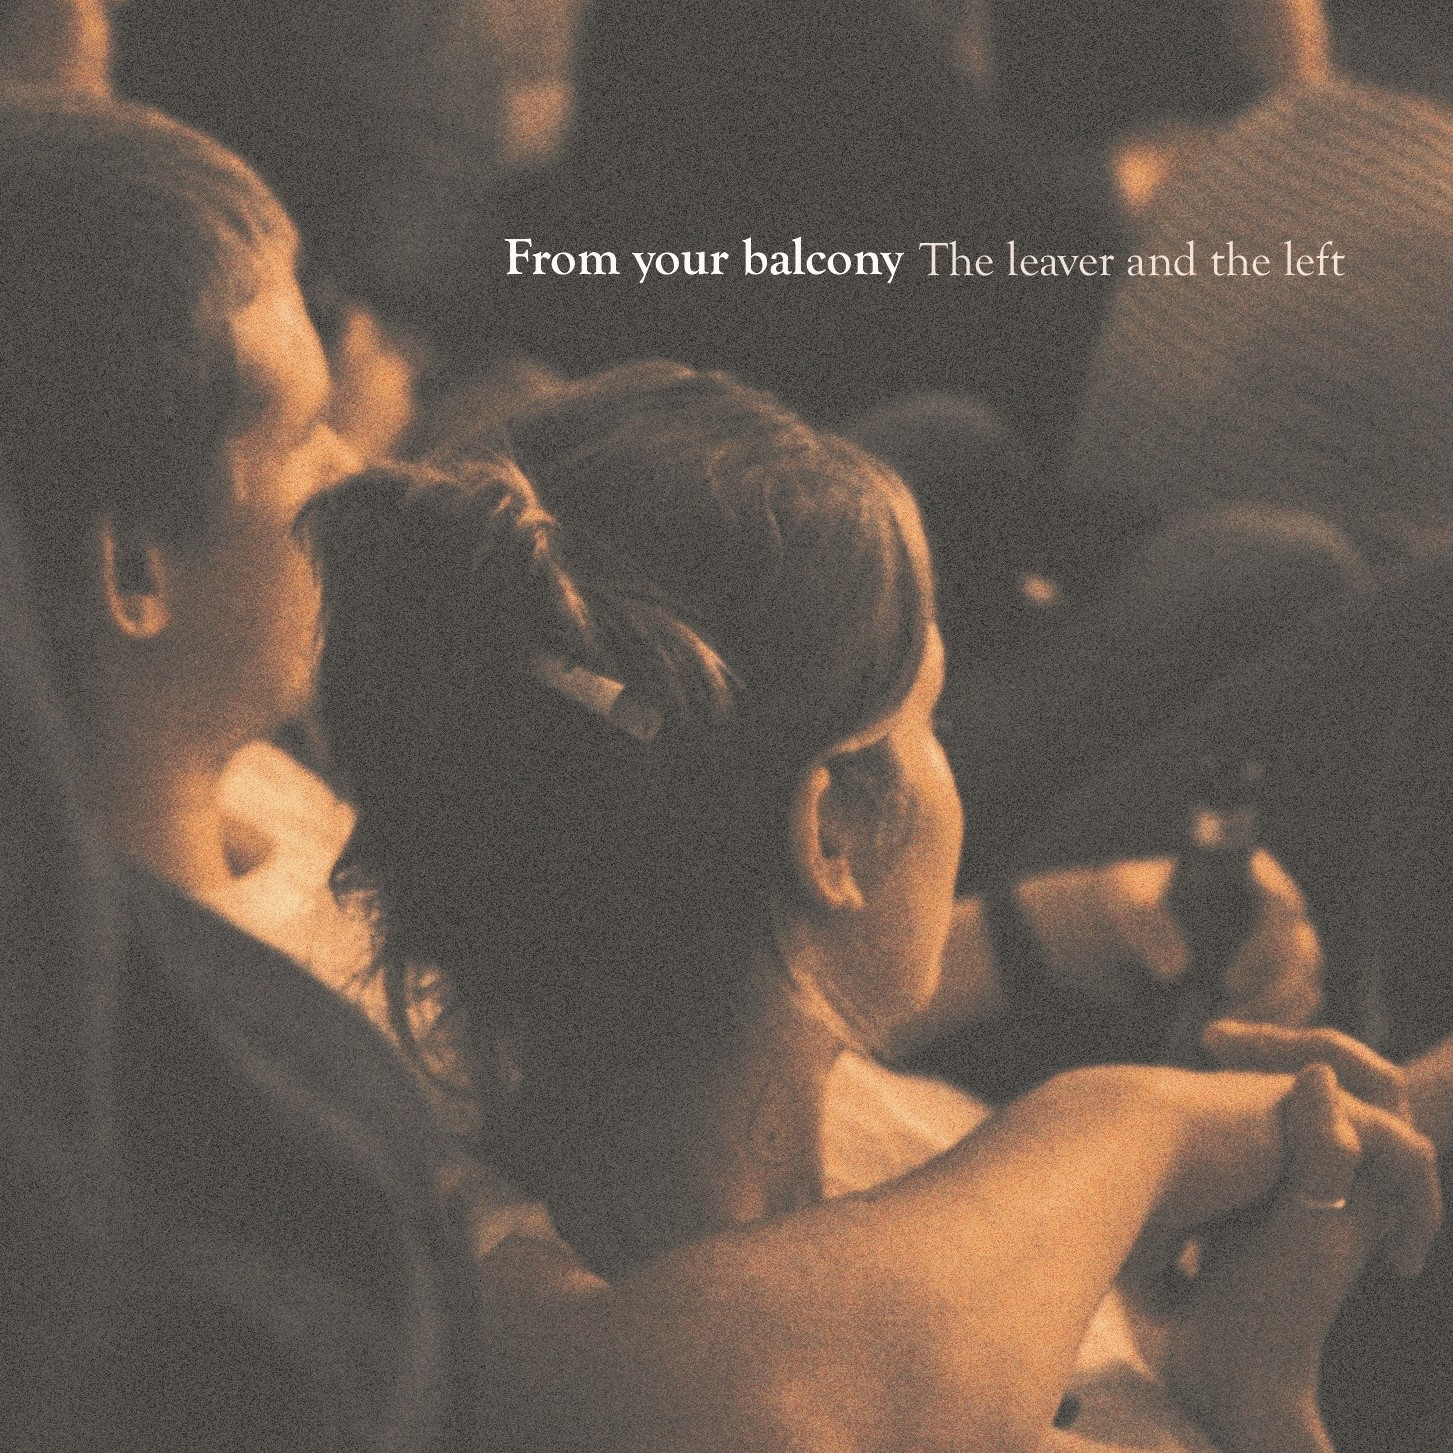 The leaver and the left CD + DIGITAL - From your balcony